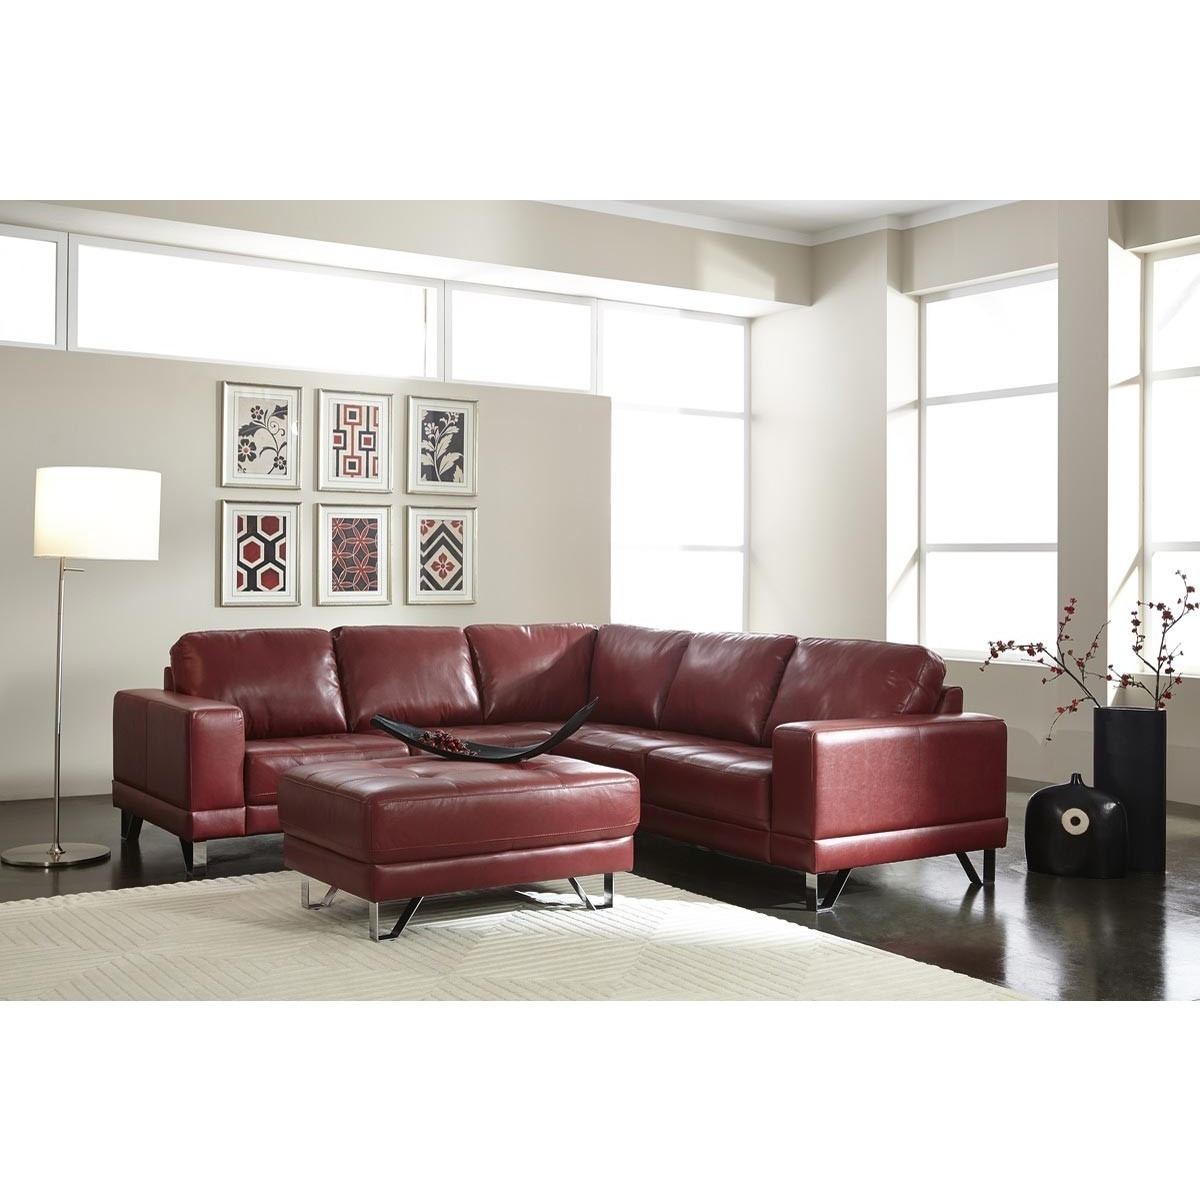 Danco Modern Pertaining To Newest Seattle Sectional Sofas (View 8 of 20)